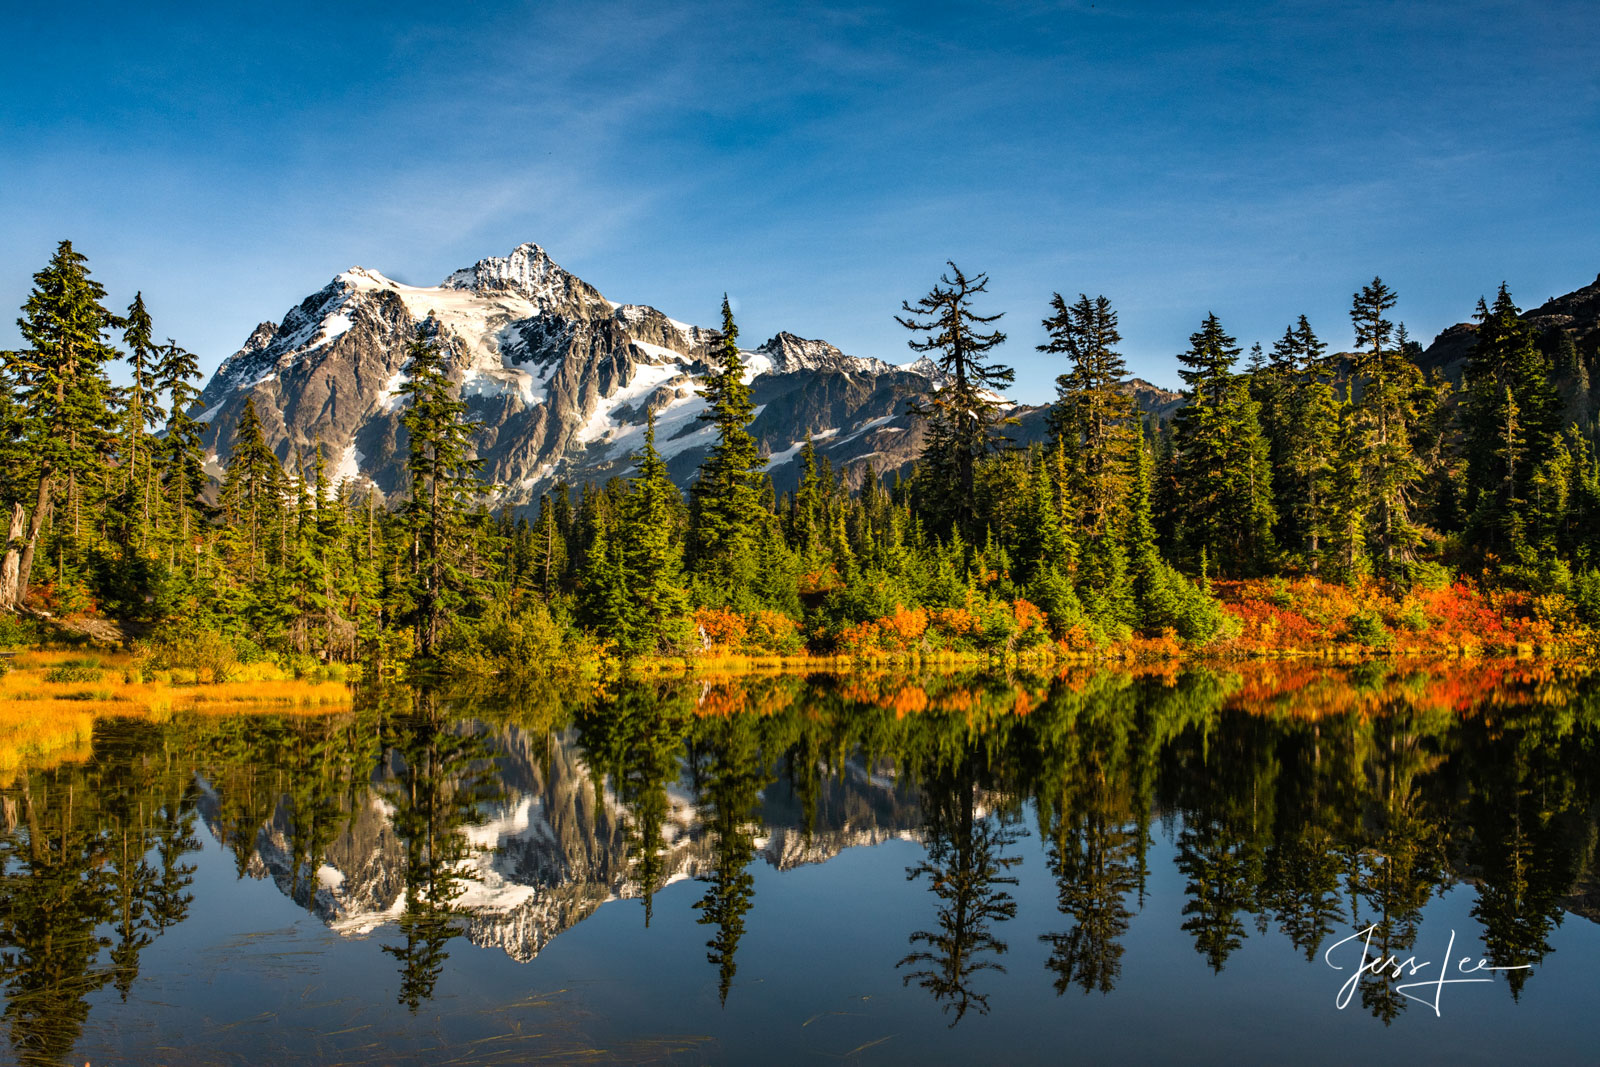 photo of Mount Shuksan, North Cascades National Park, Washington state photography, landscape, mountain range, snow-covered peaks, Pacific Northwest, PNW, autumn, fall colors, lake, reflections on wat, photo